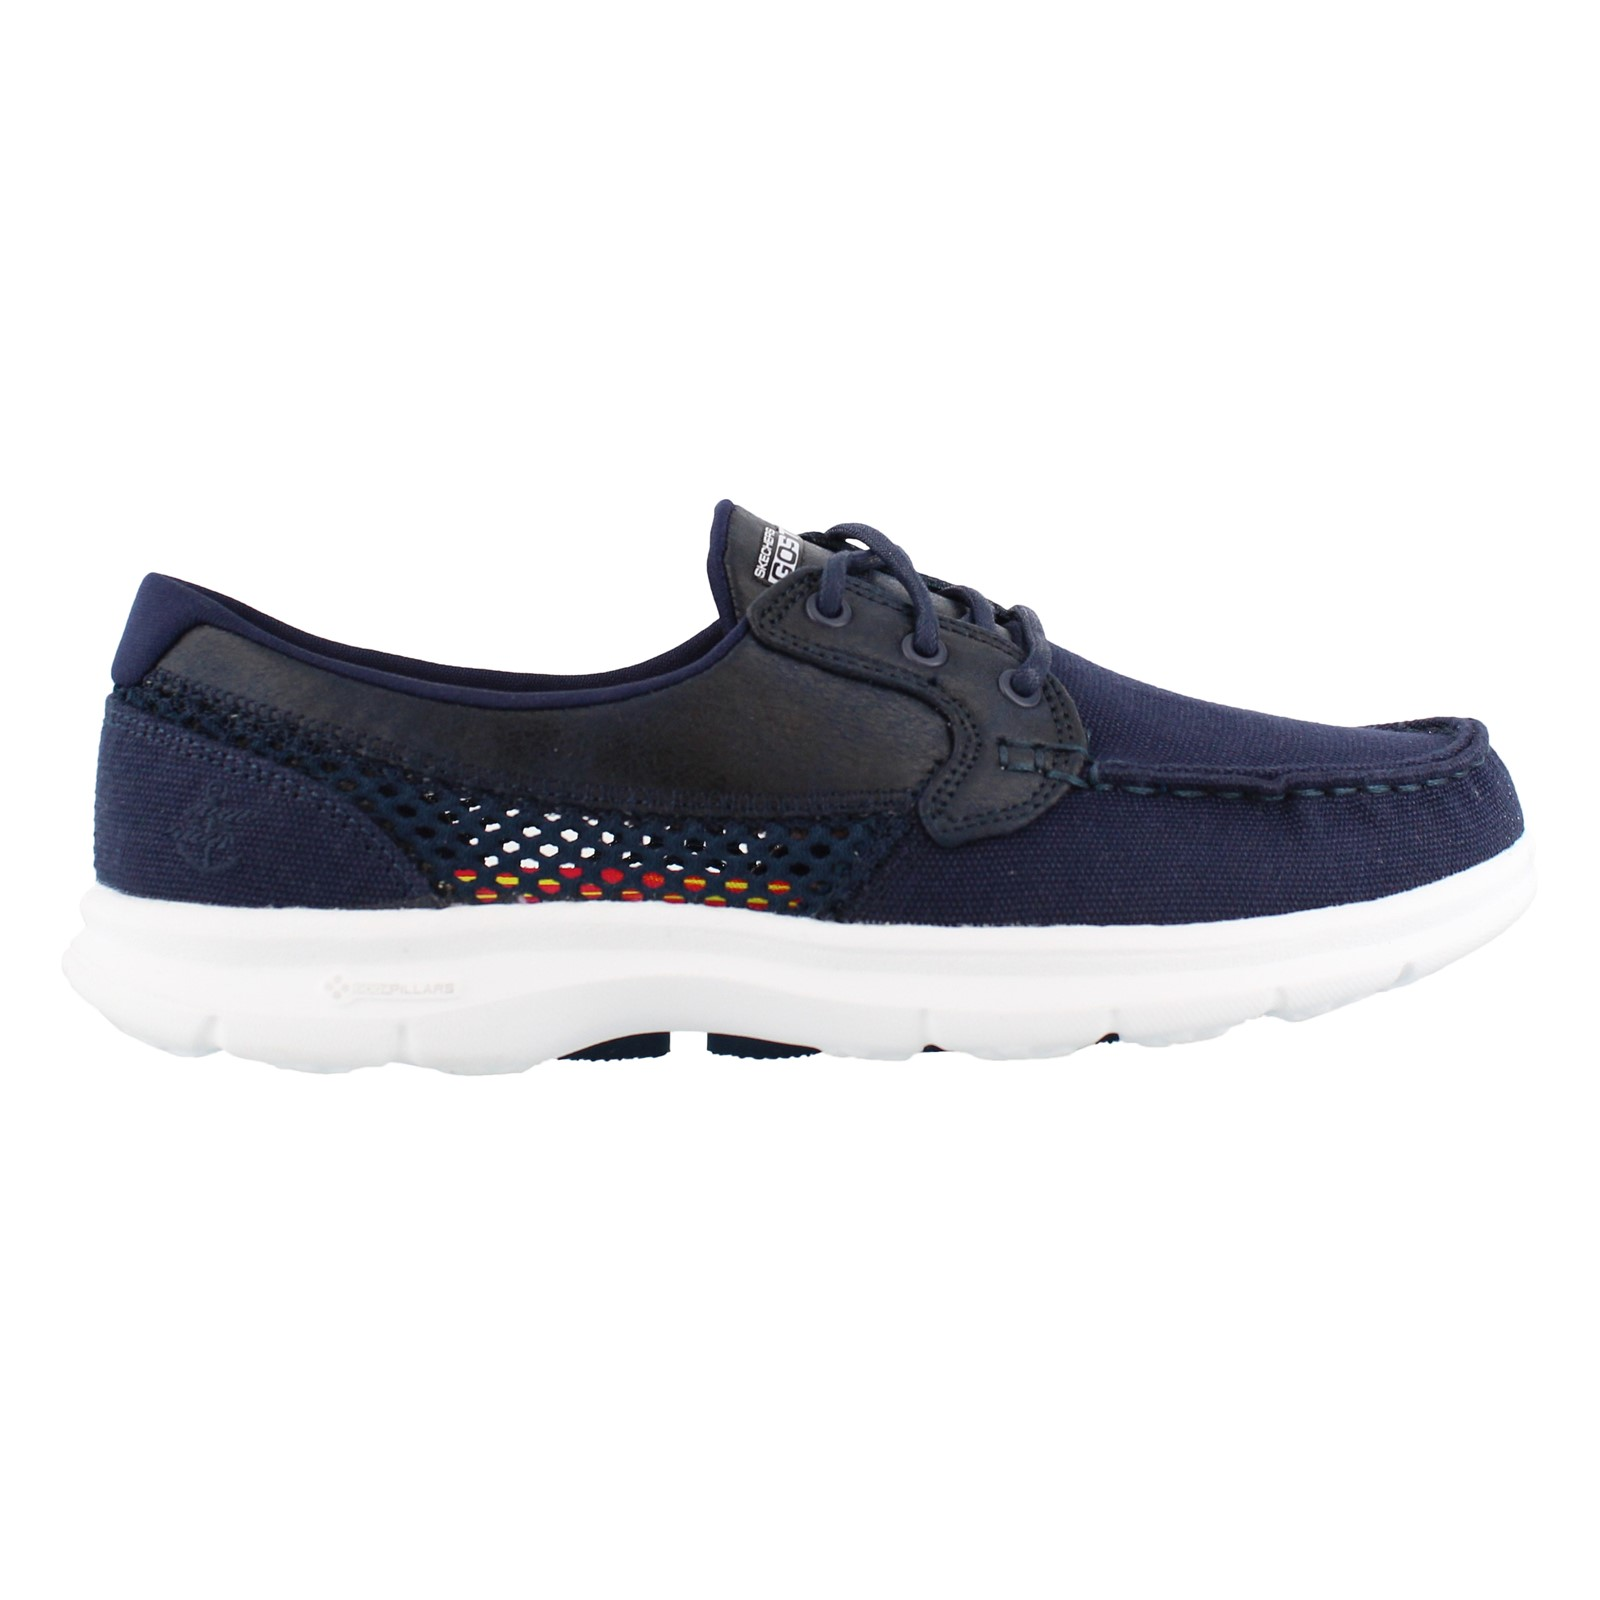 Women's Skechers Performance, Go Step Naval Lace up Boat Shoes